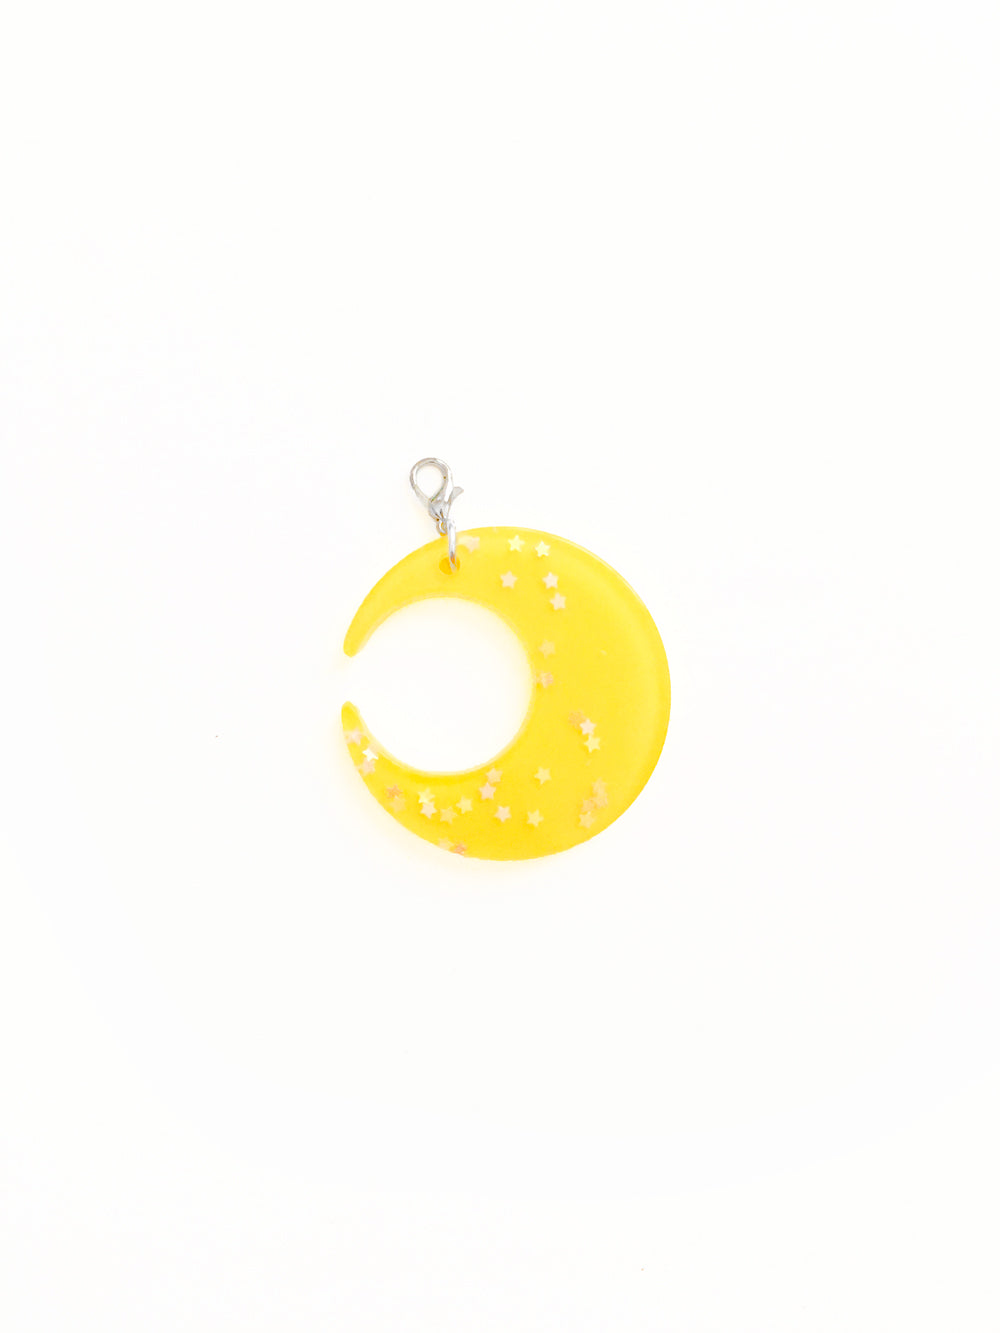 Moon Zipper Pull Charm